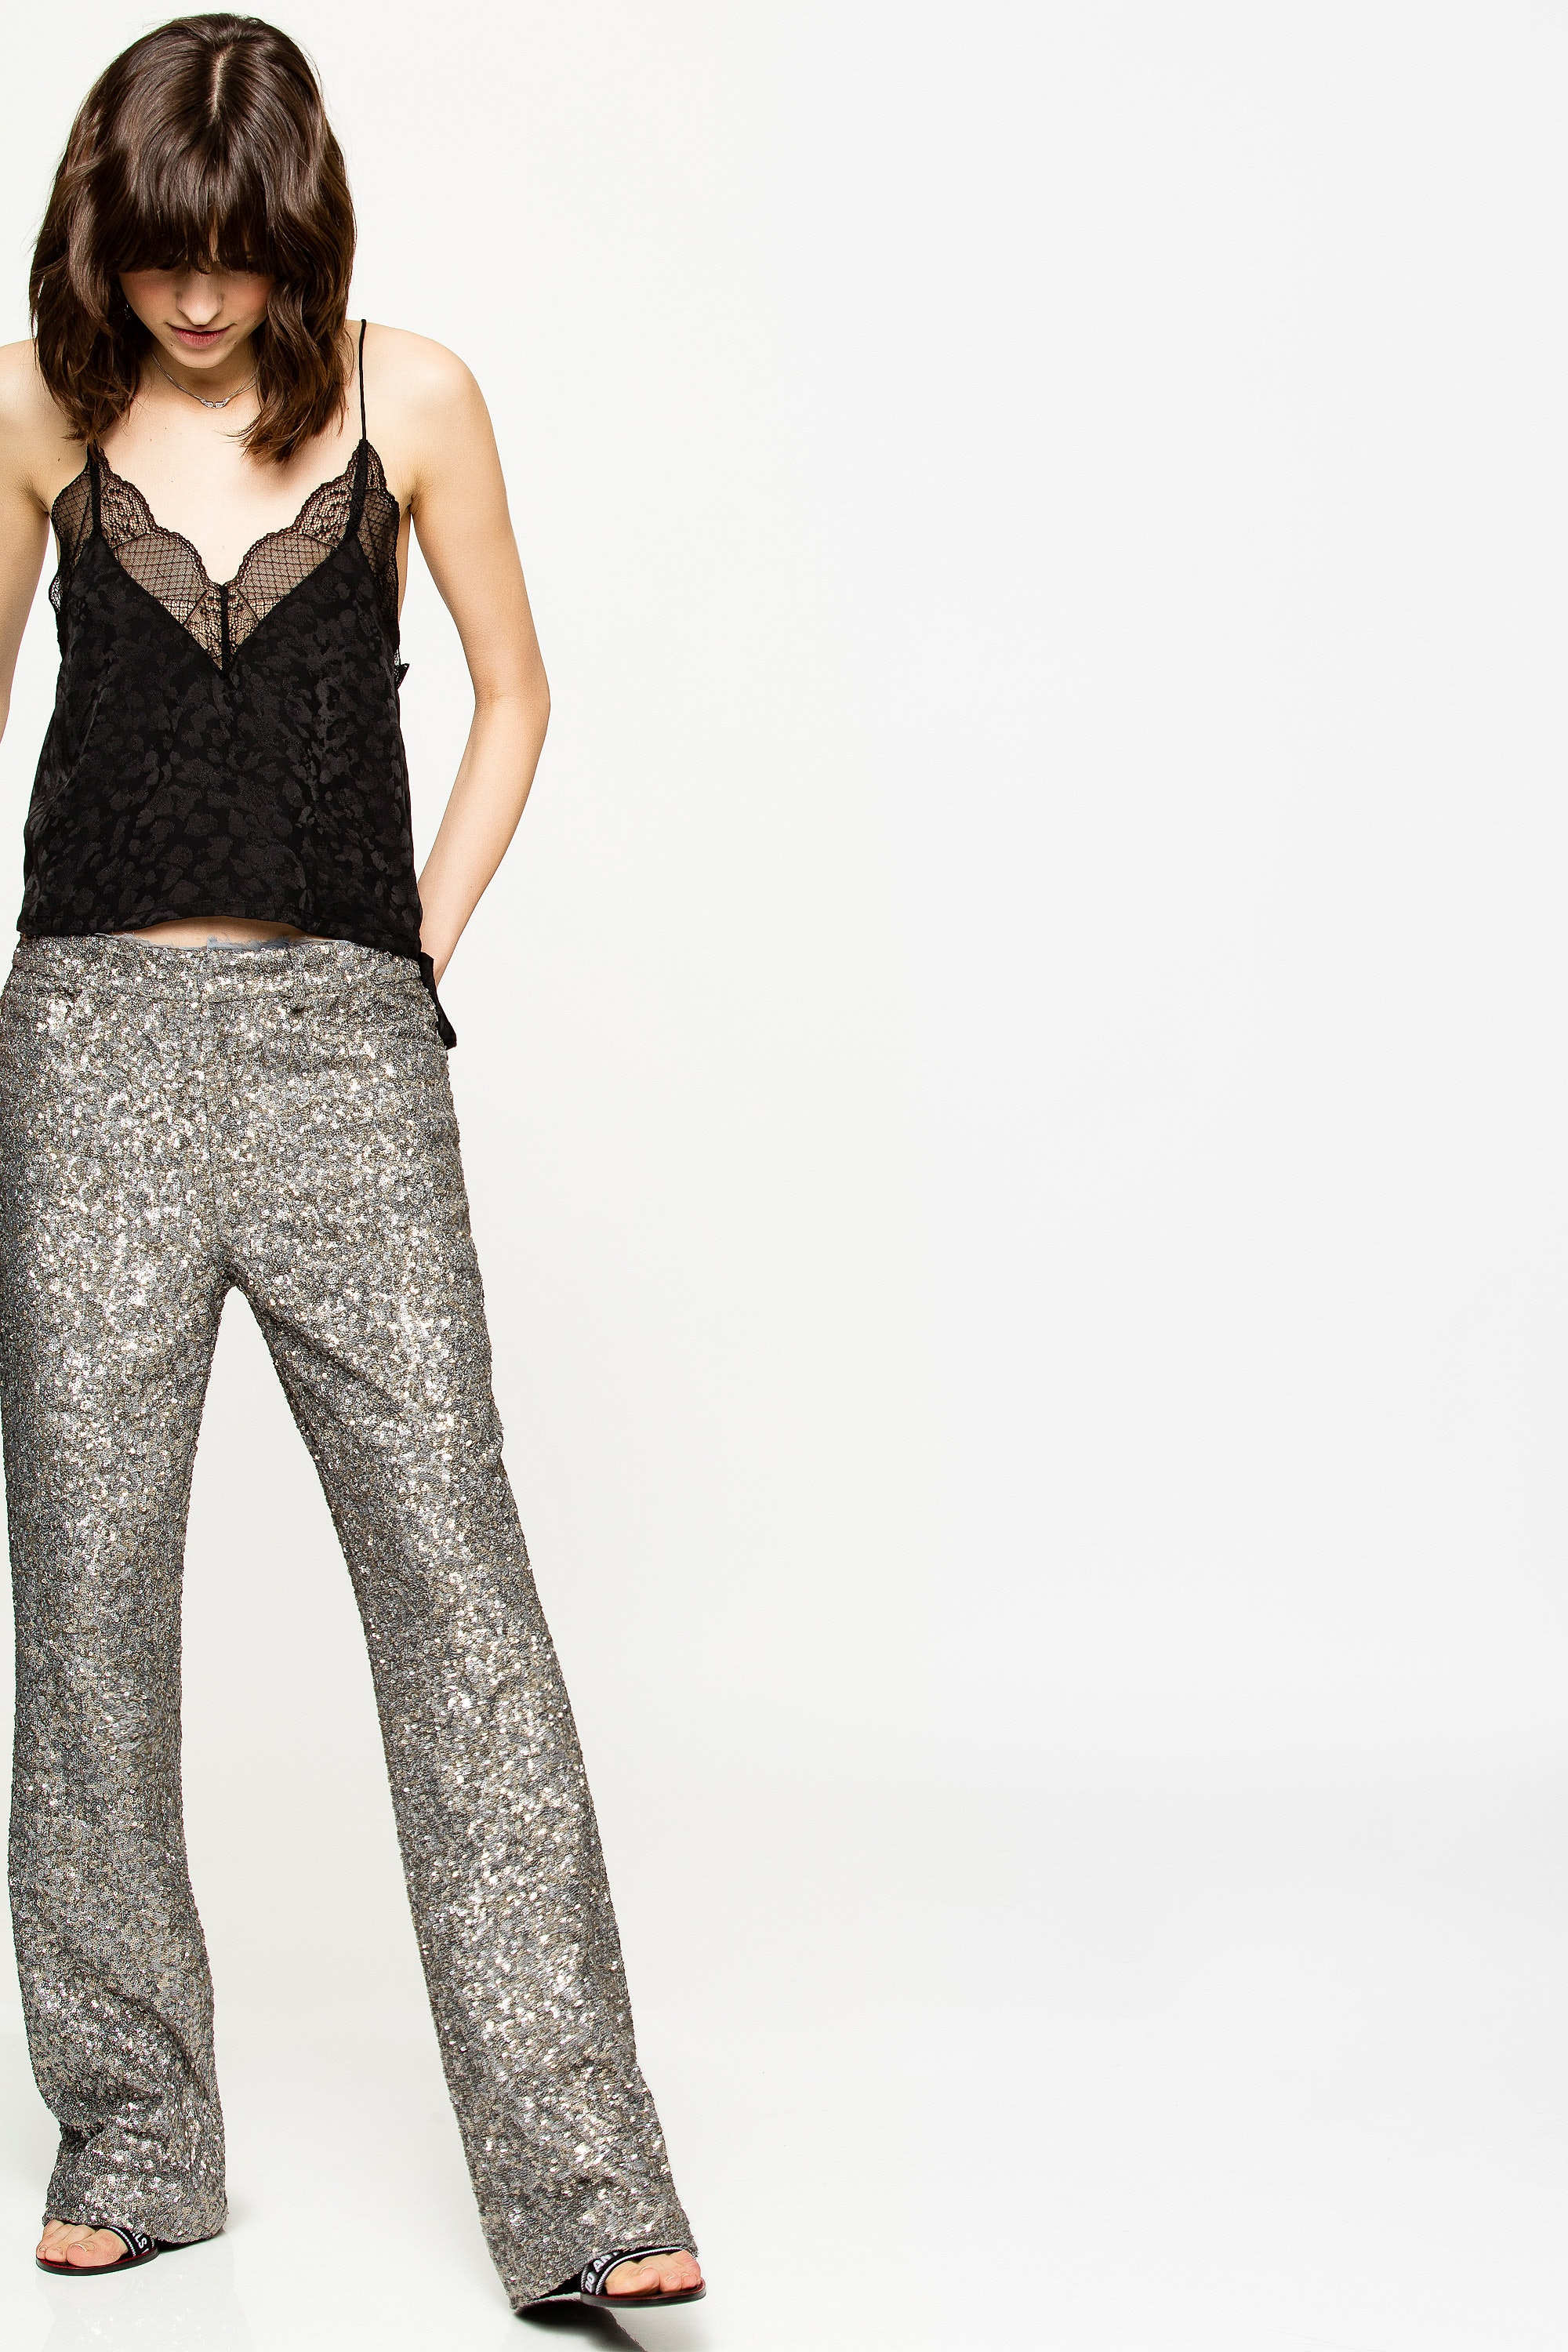 Pistol Sequins Pants